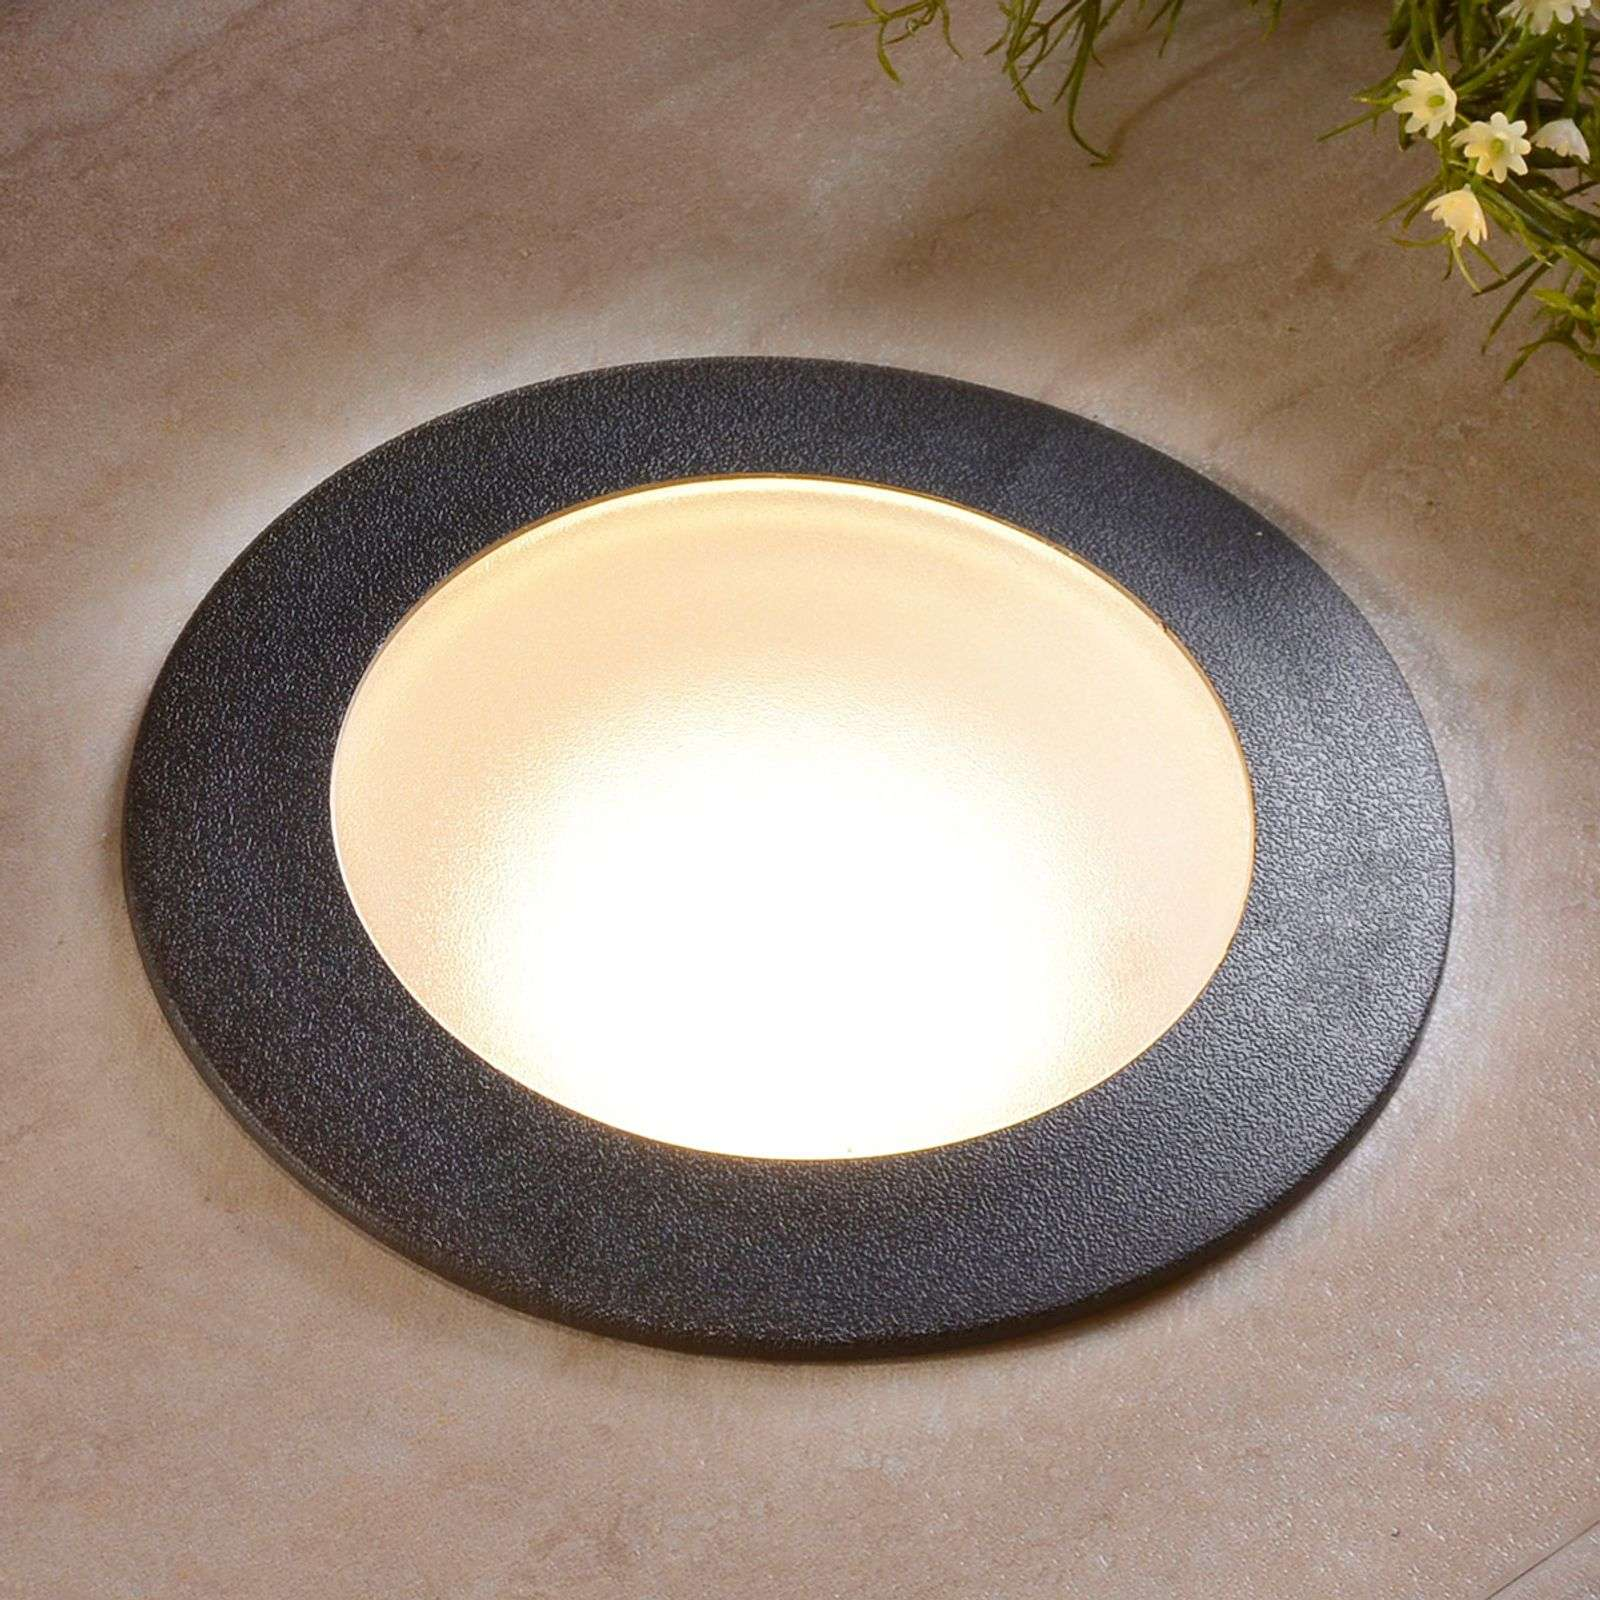 CECI 160 LED recessed floor light, round, ww.